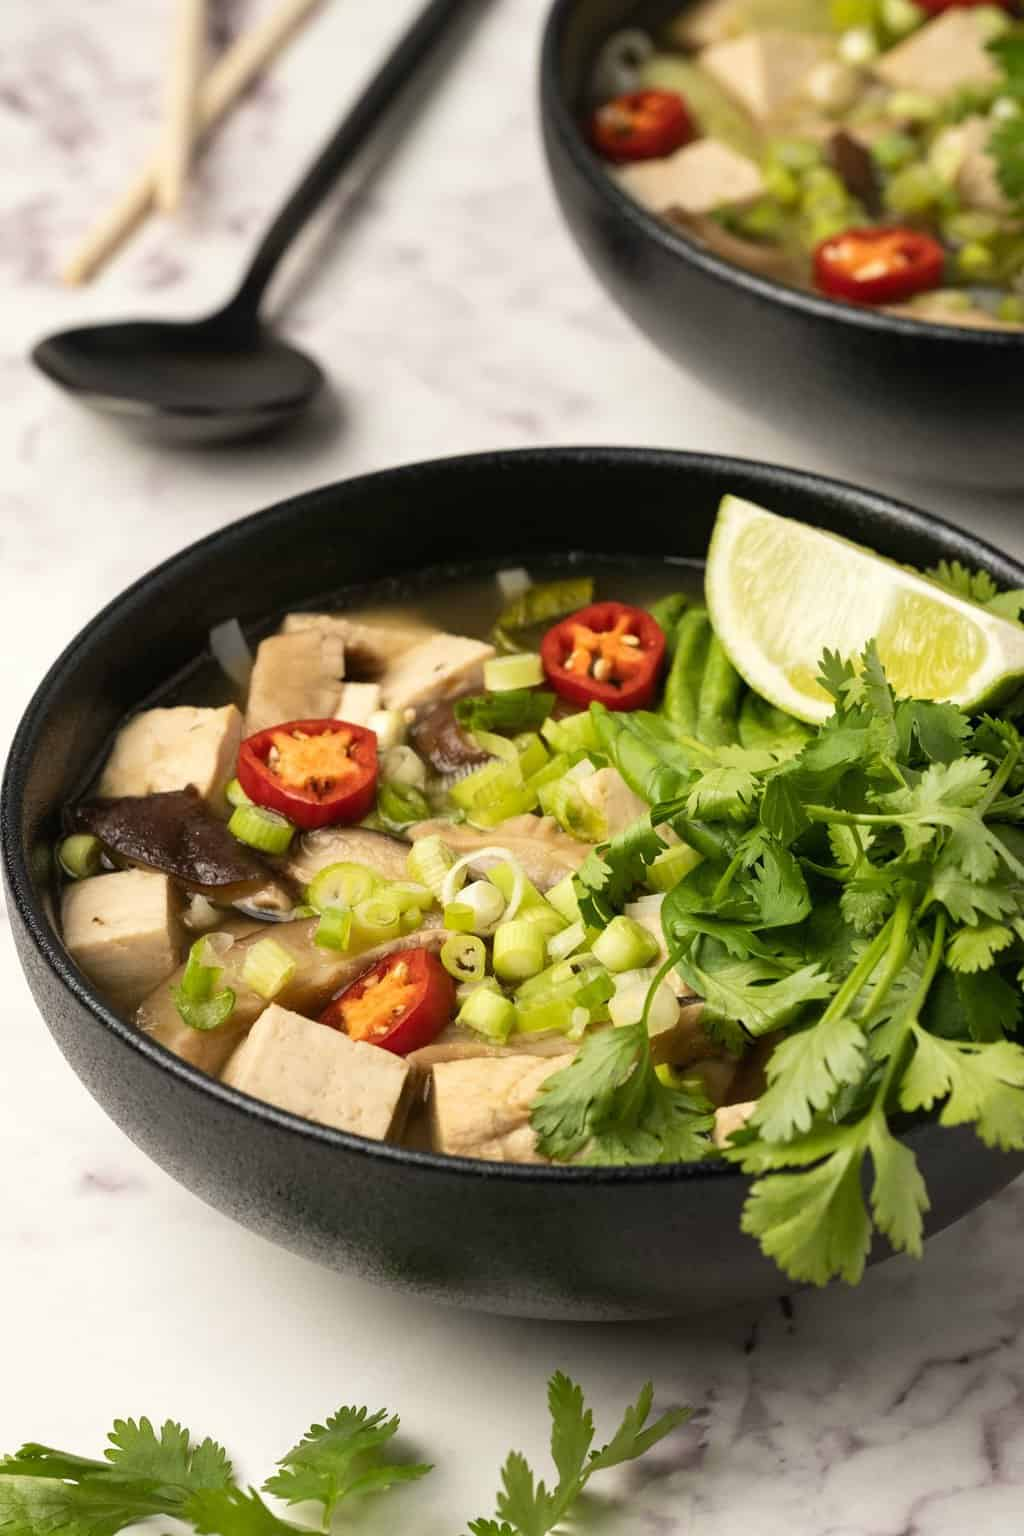 Vegan pho with fresh lime and herbs in a black bowl.